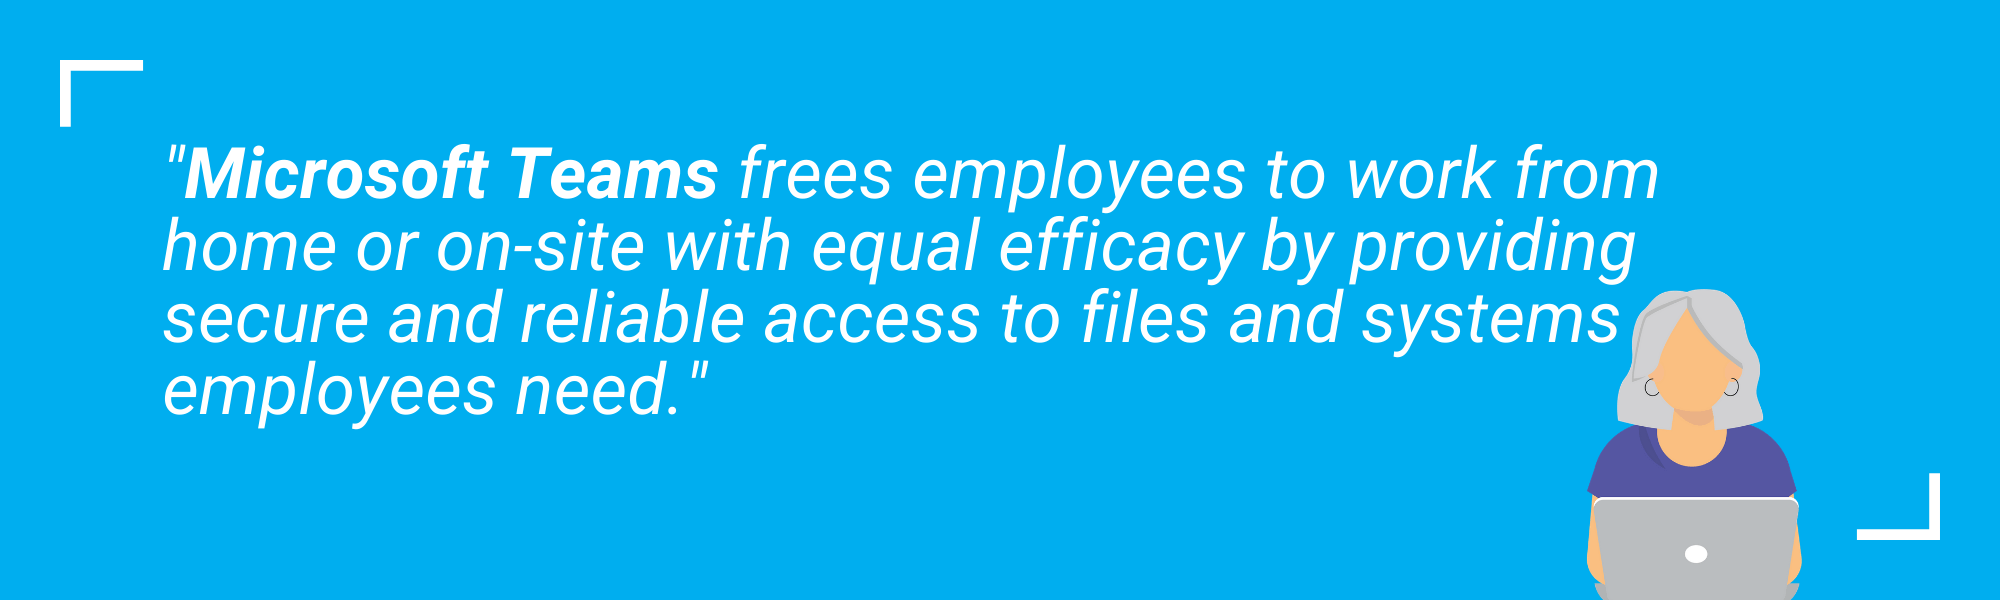 A quote stating Microsoft teams frees employees to work form home or on-site with equal efficacy